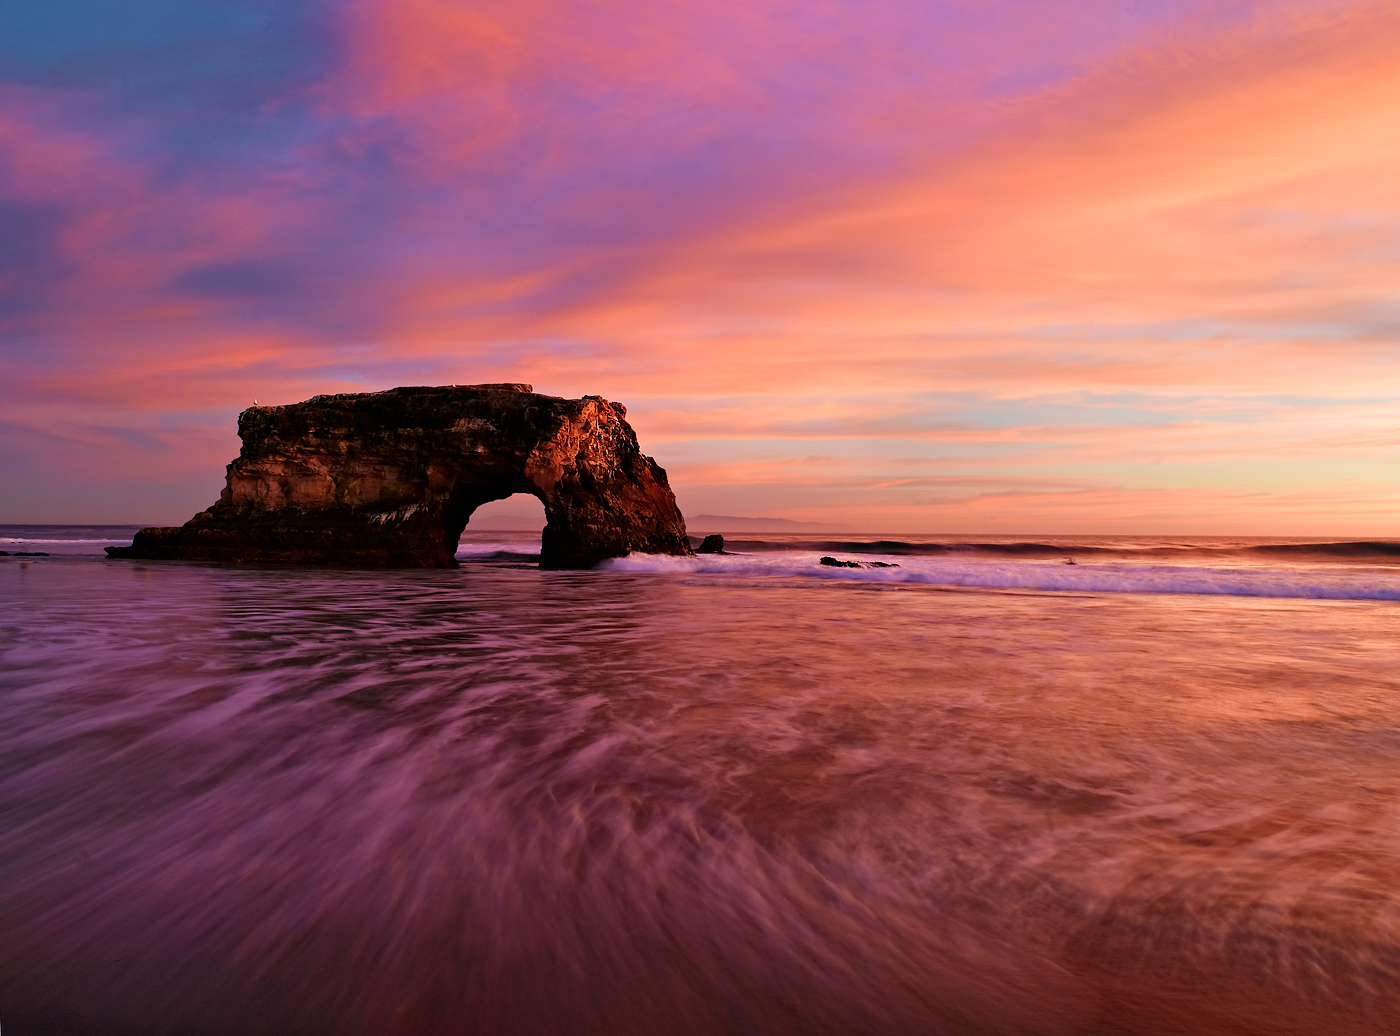 Sunset at Natural Bridges State monument in Santa Cruz, California.